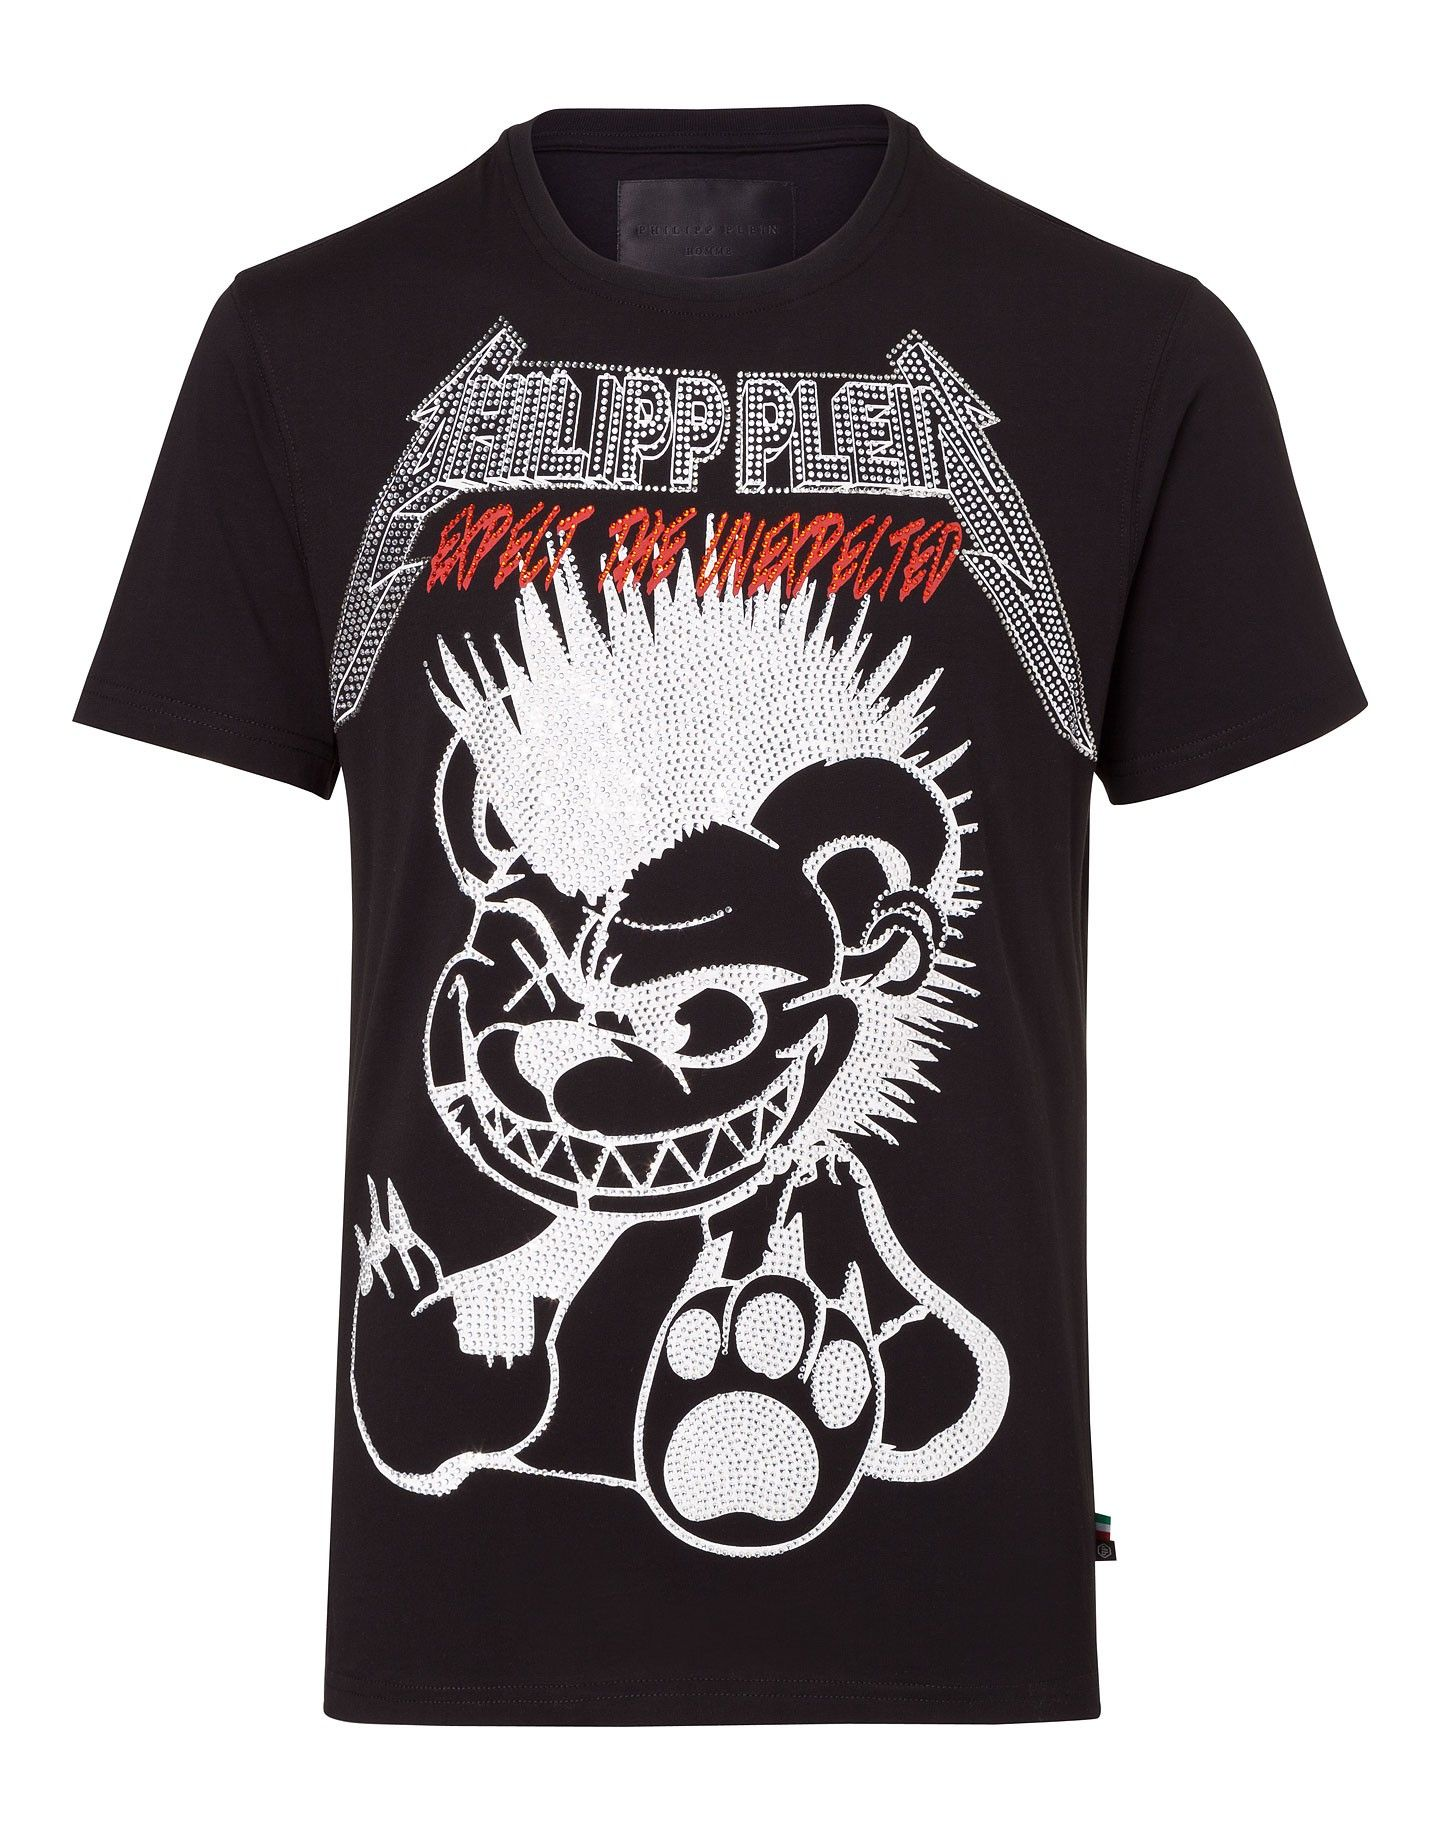 Explore Philipp Plein Outlet, Men Online, and more! PHILIPP PLEIN T-SHIRT